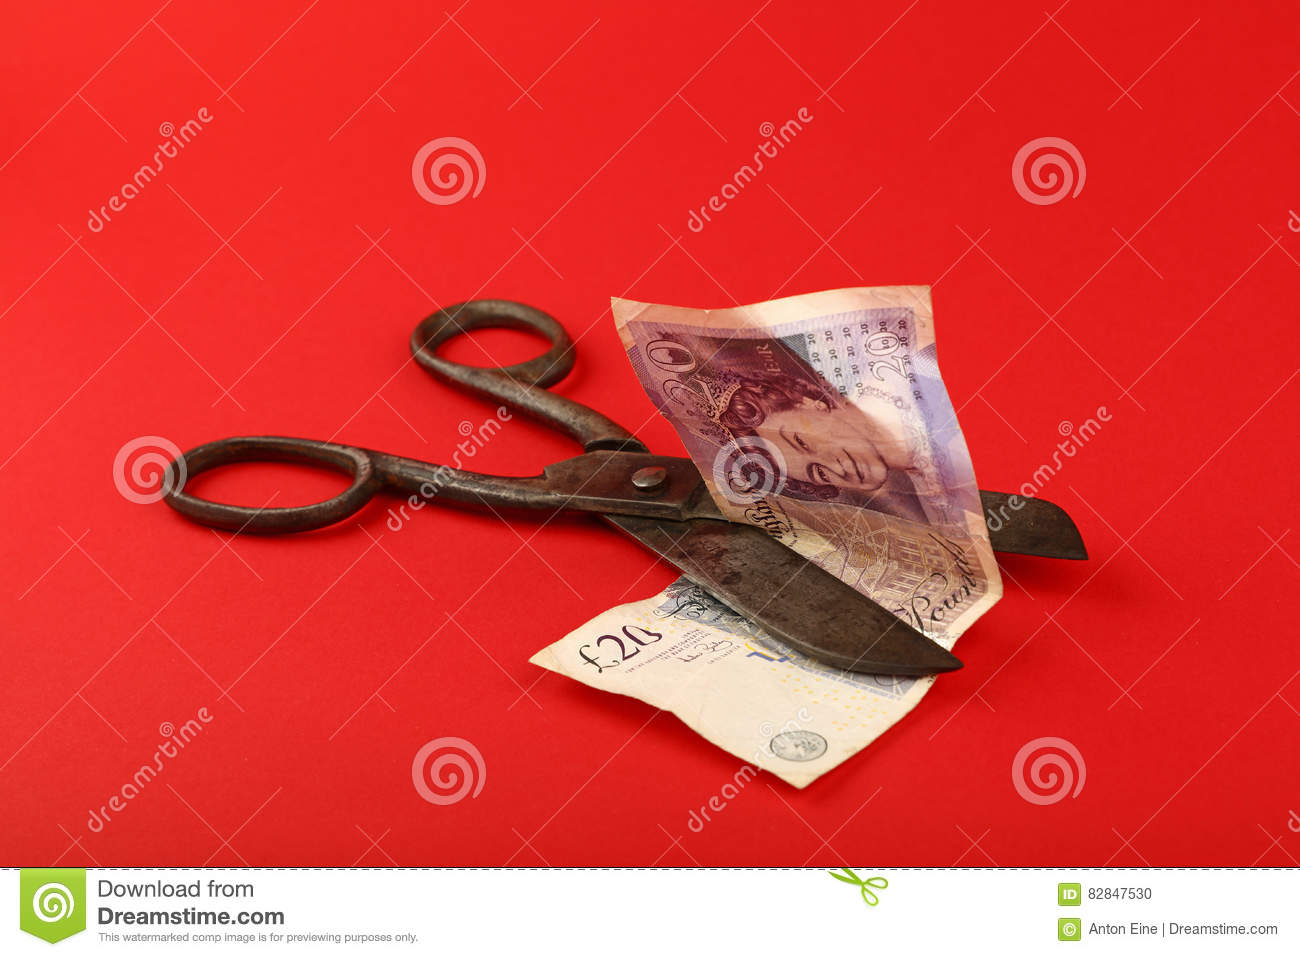 Scissors Cut British Pound Over Red Background Editorial Image